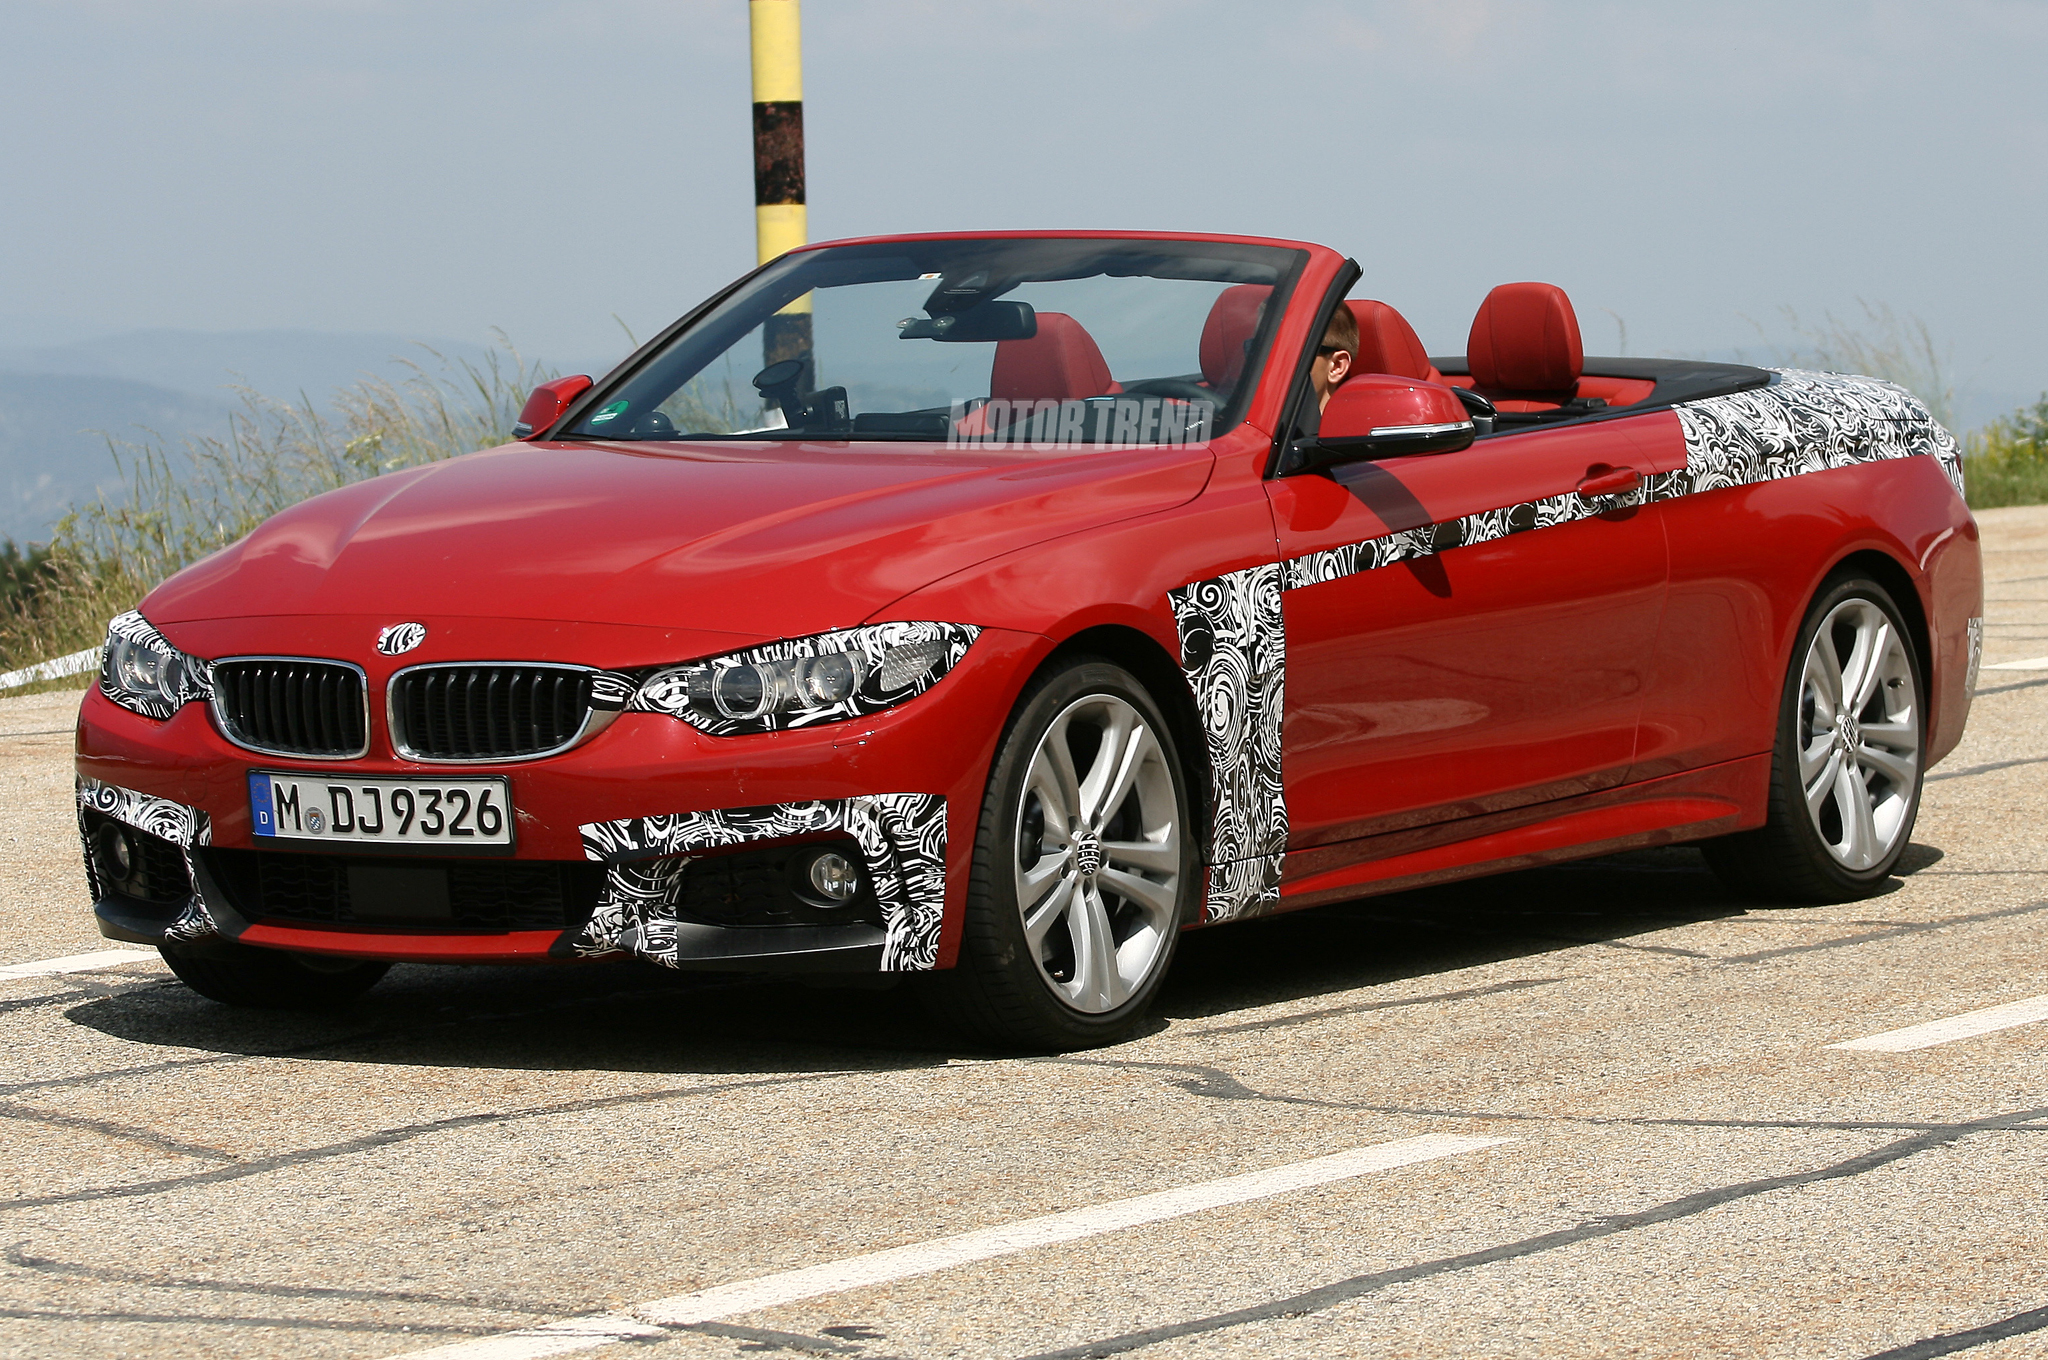 Spied: 2014 BMW 4 Series Convertible Is Red Hot